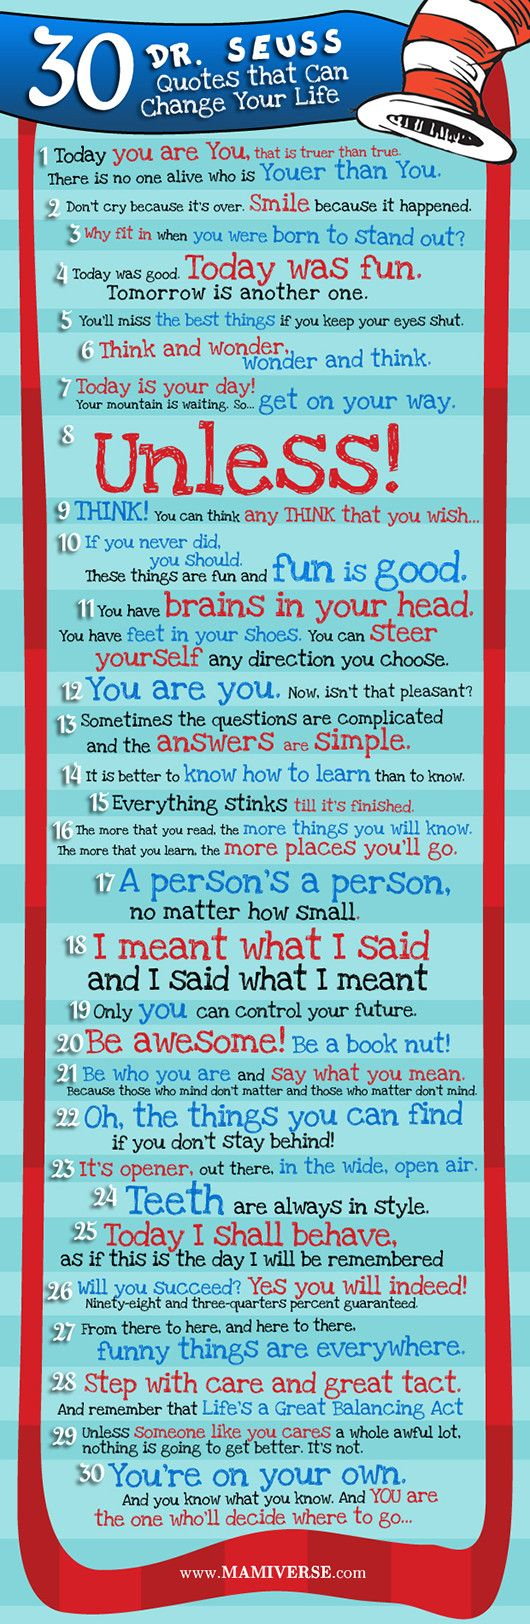 Life Quotes Kids The Most Awesome Images On The Internet  Change Doctor Suess